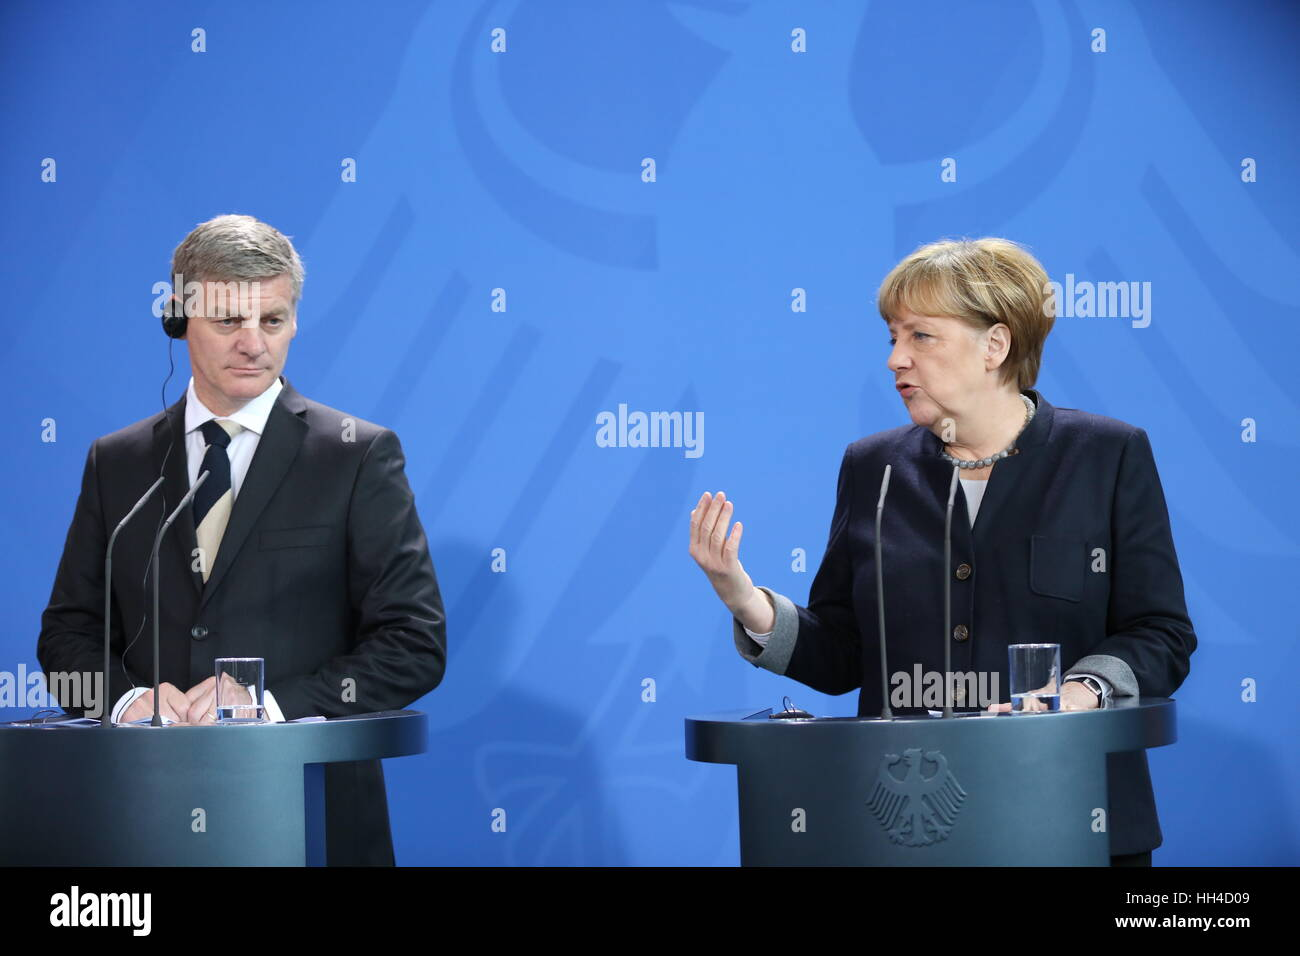 Berlin, Germany. 16th Jan, 2017. The photo shows Chancellor Angela Merkel and the New Zealand Prime Minister Bill - Stock Image